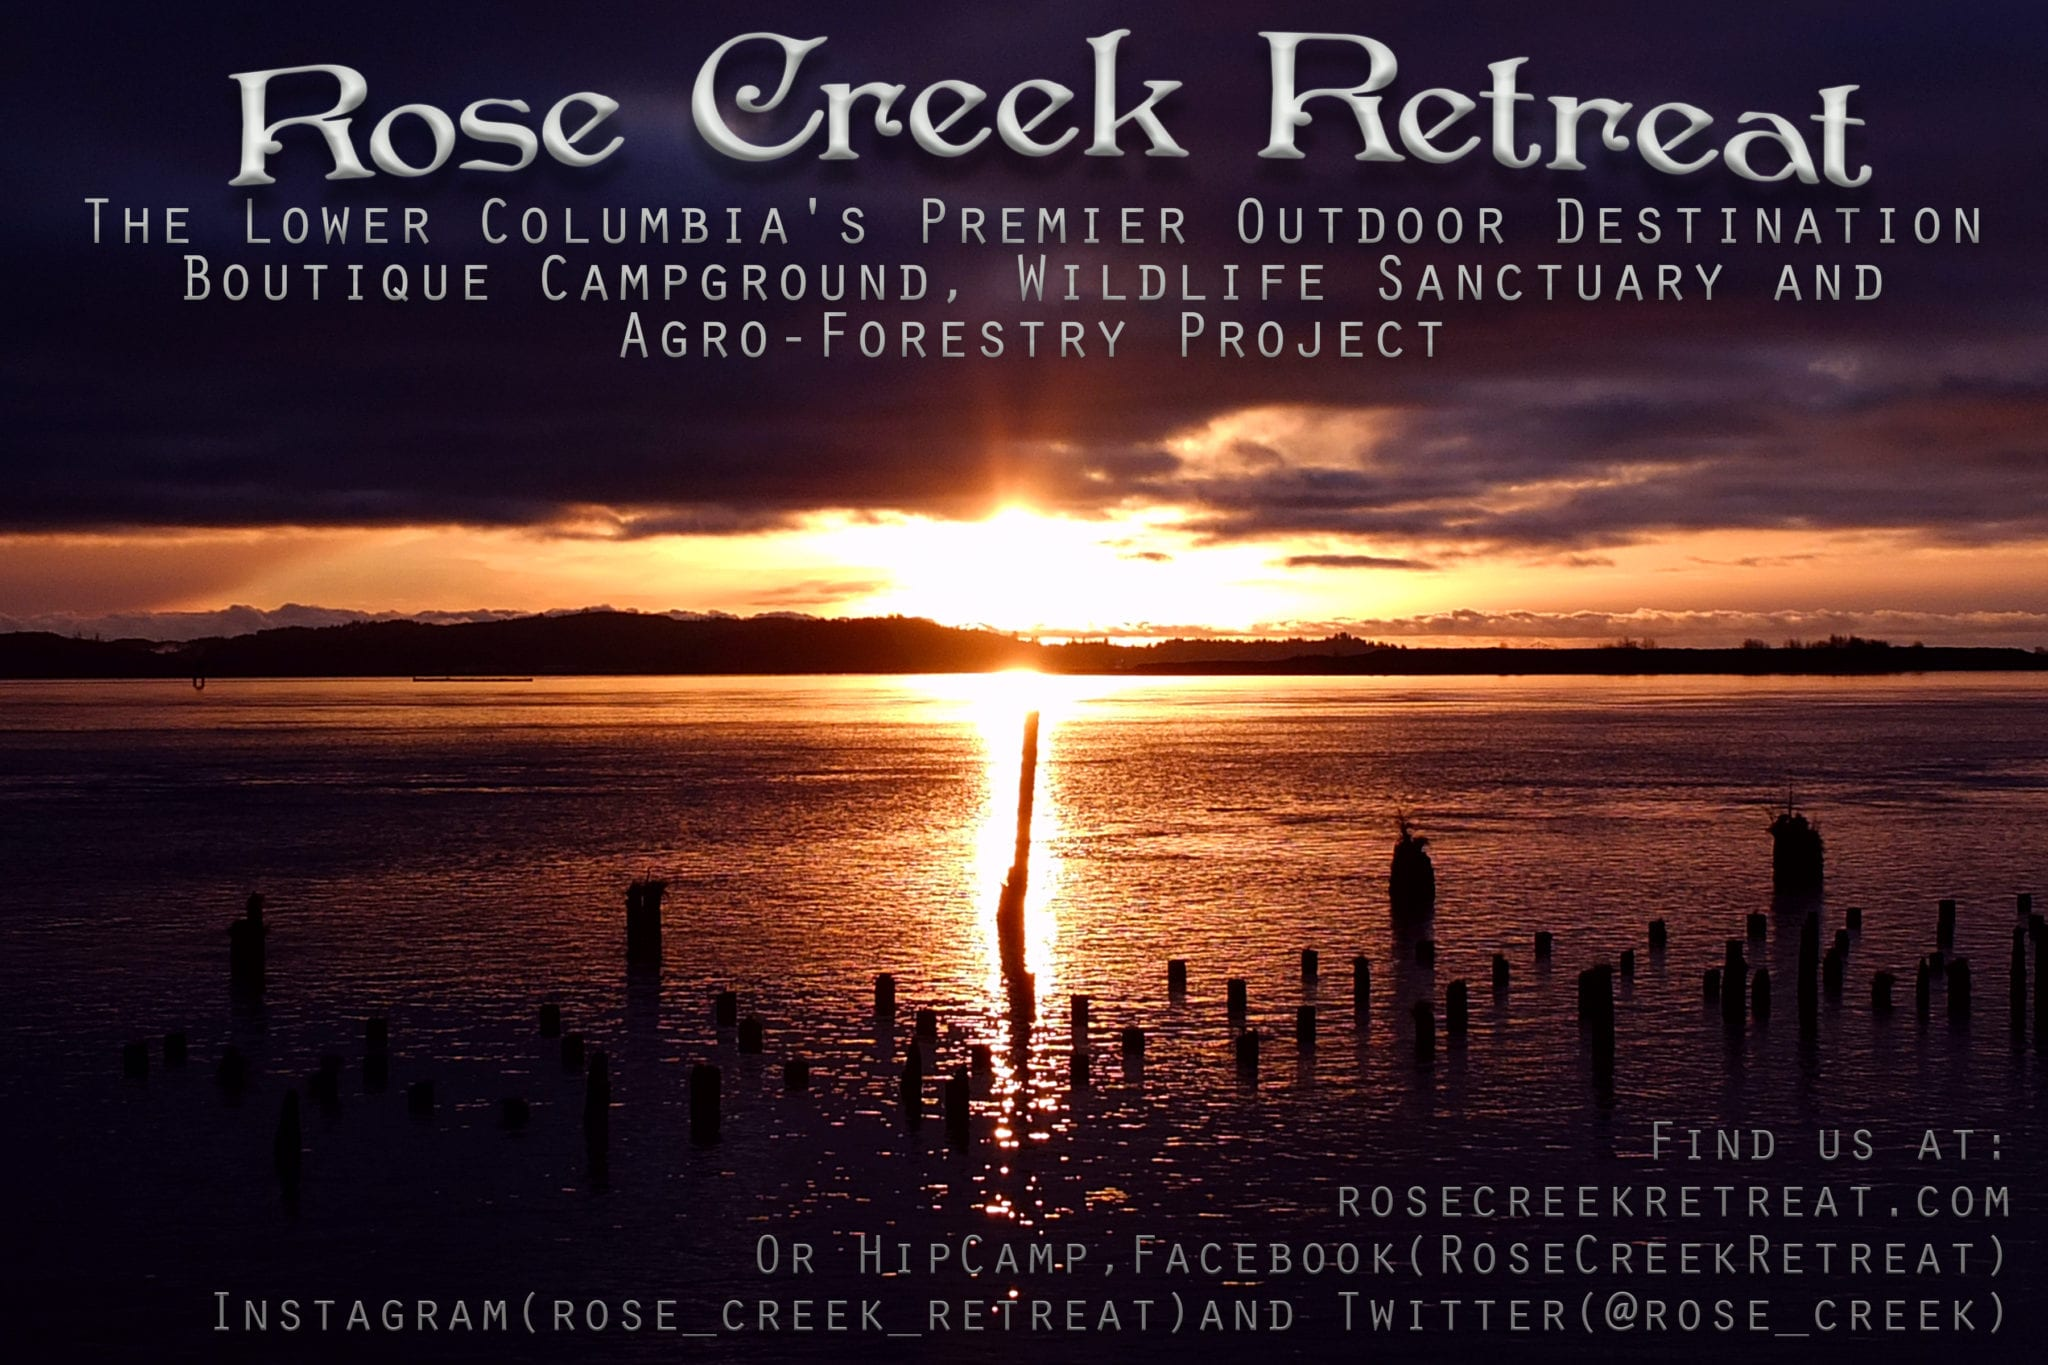 Rose Creek Retreat